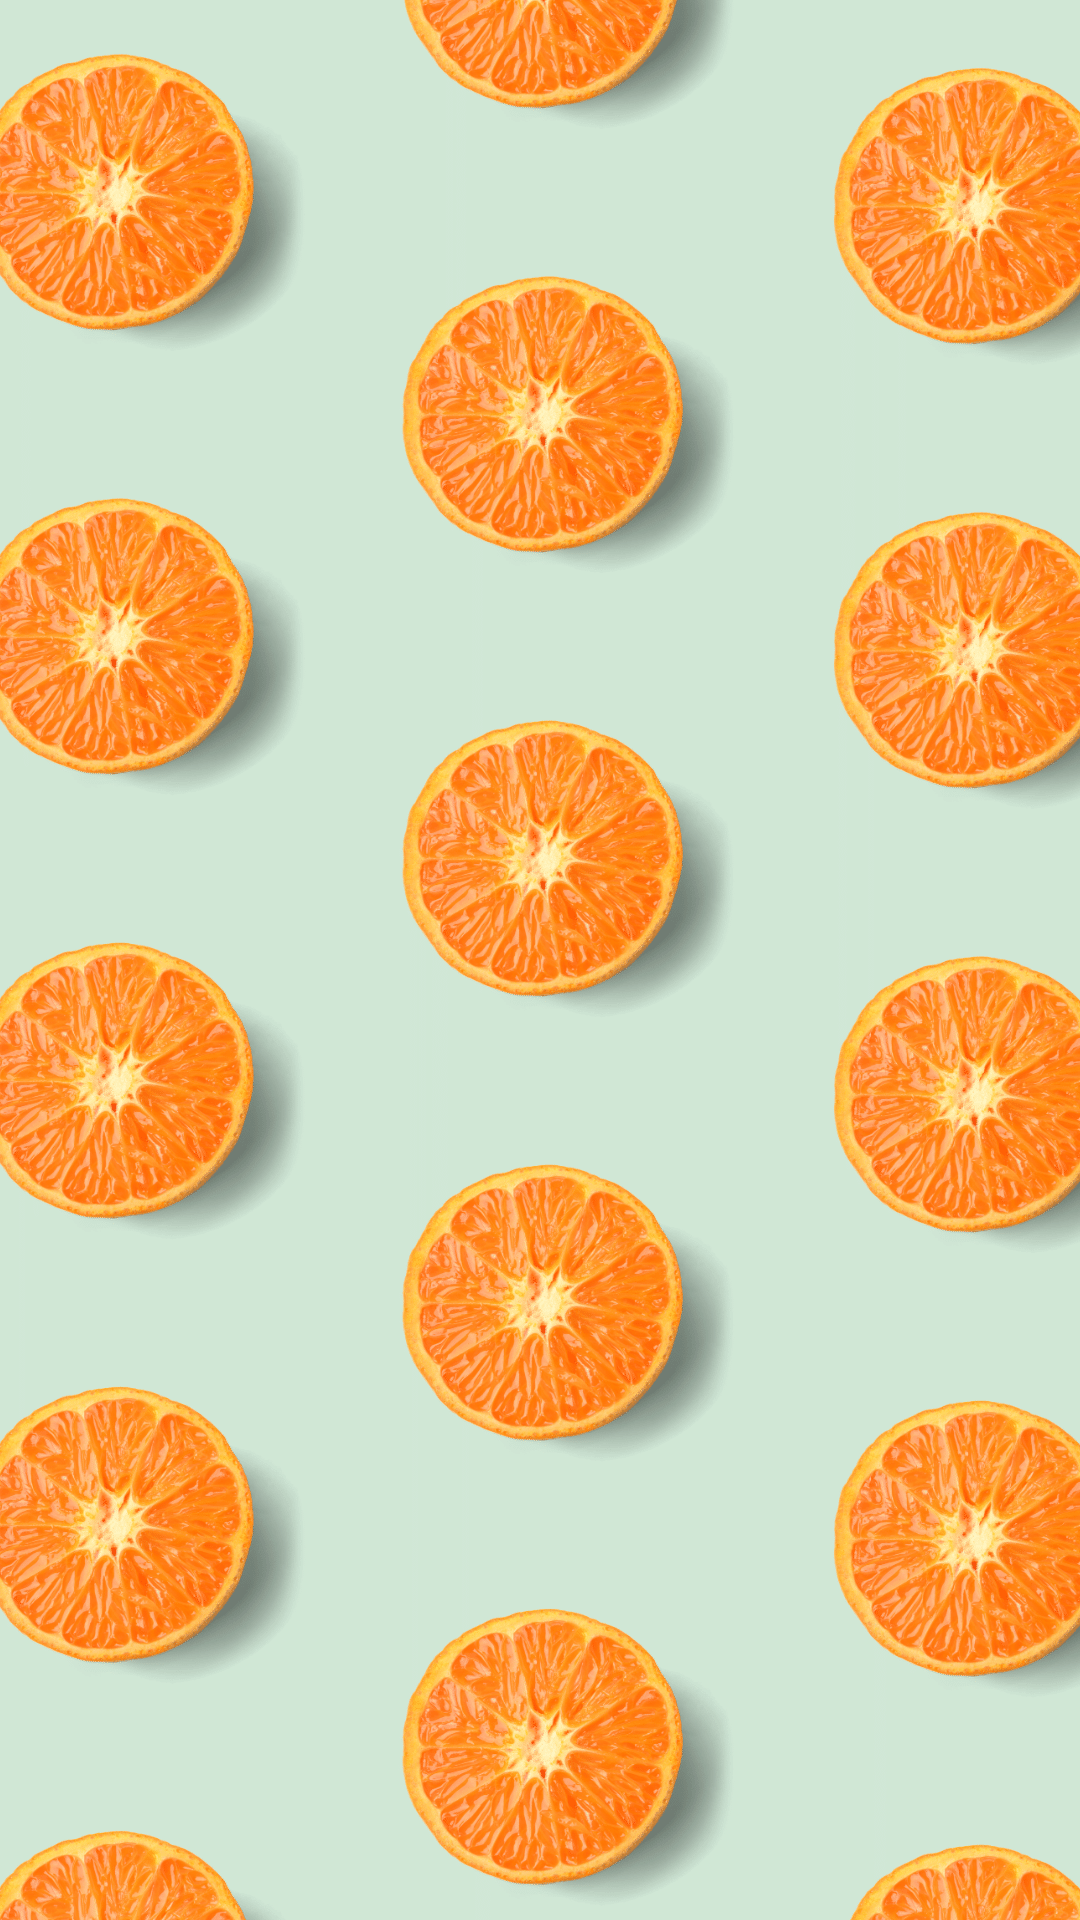 Free Downloads Summer Phone Wallpapers Phone Wallpaper Fruit Wallpaper Iphone Wallpaper